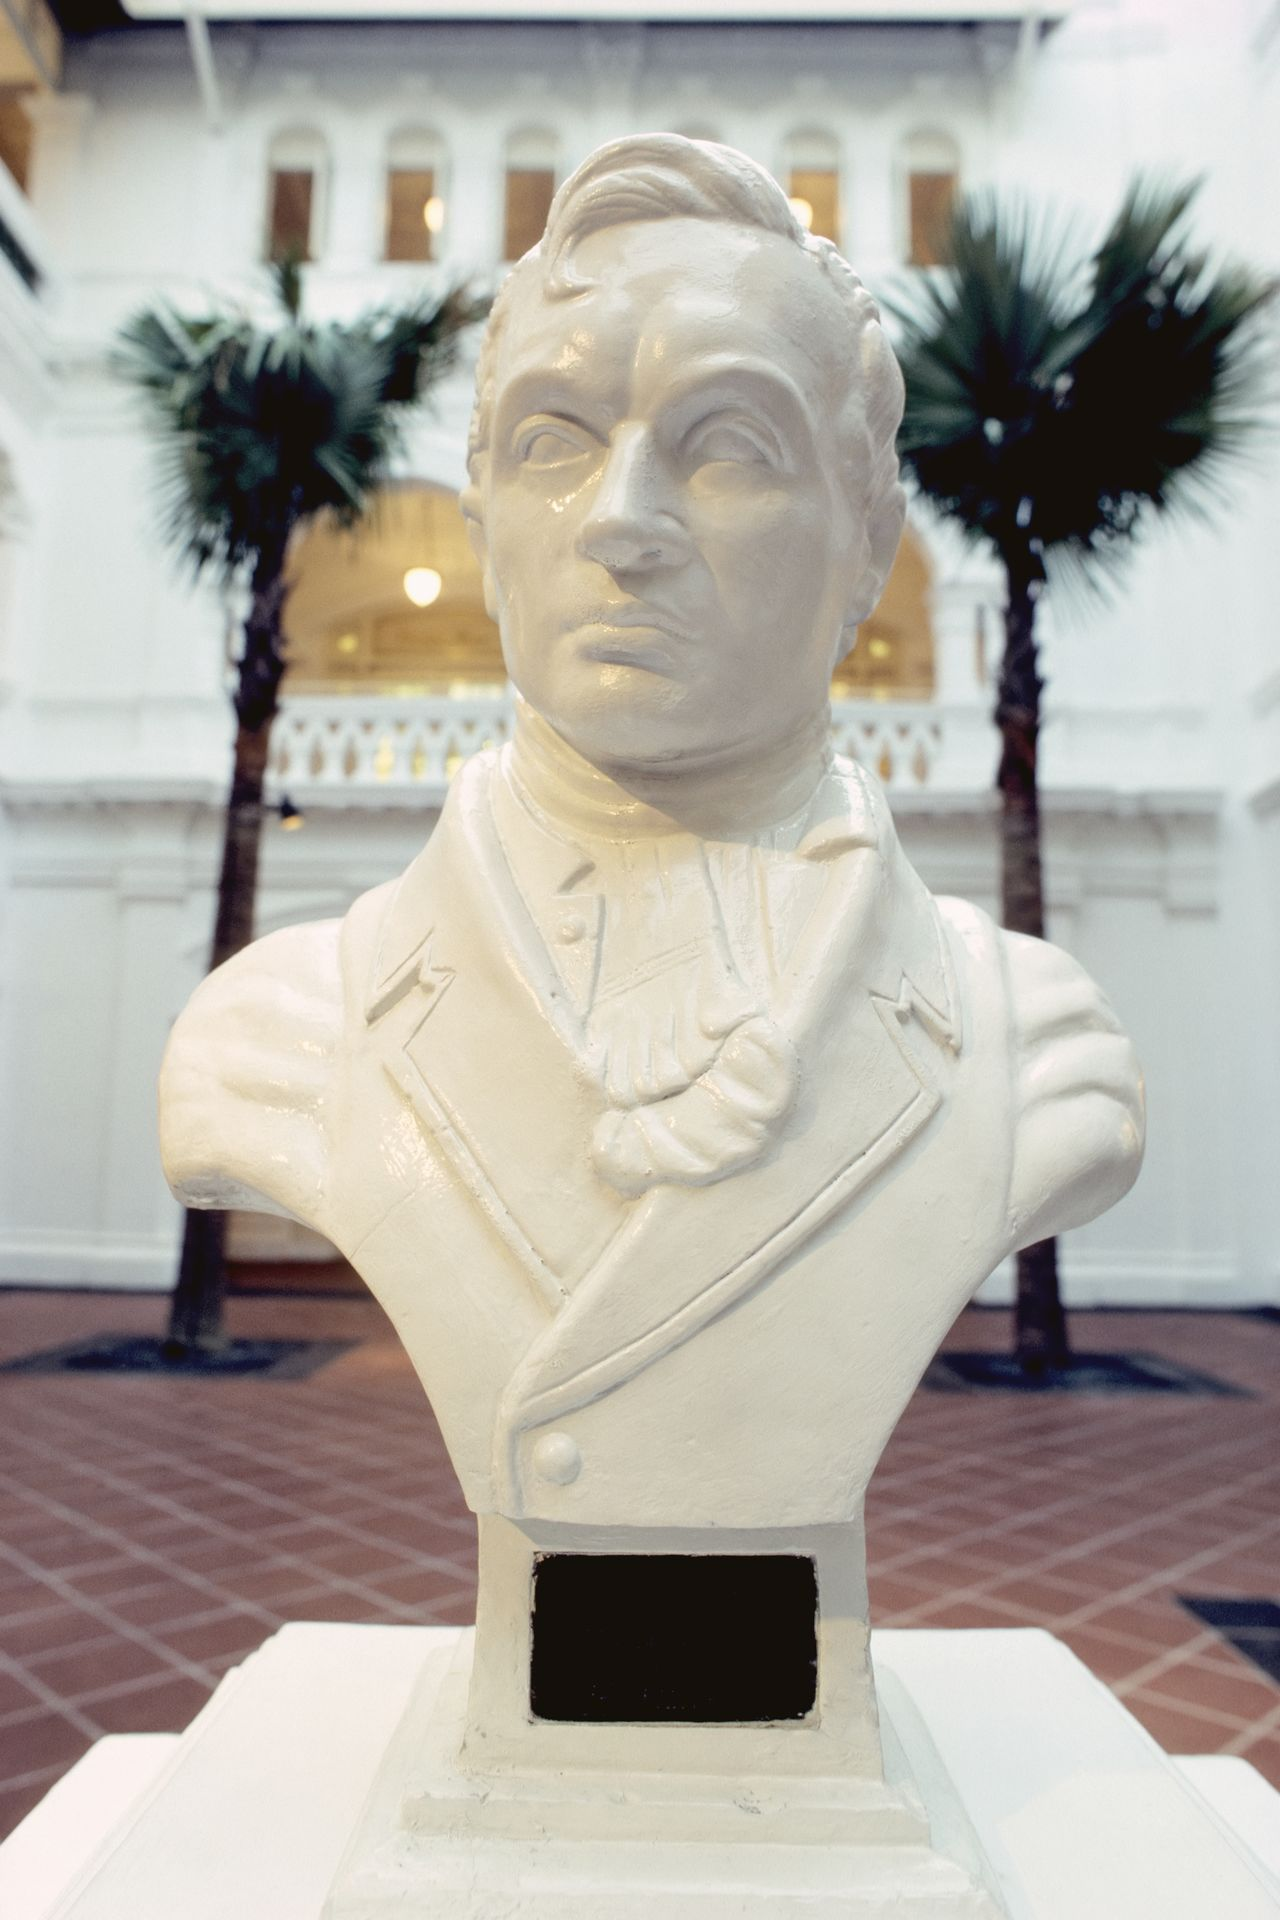 Raffles bust at the Raffles Hotel Architecture Art & Craft Bust  Colonialism Inner Yard Palm Trees Raffles Hotel  Raffles Singapore Southeast Asia Vertical White Color